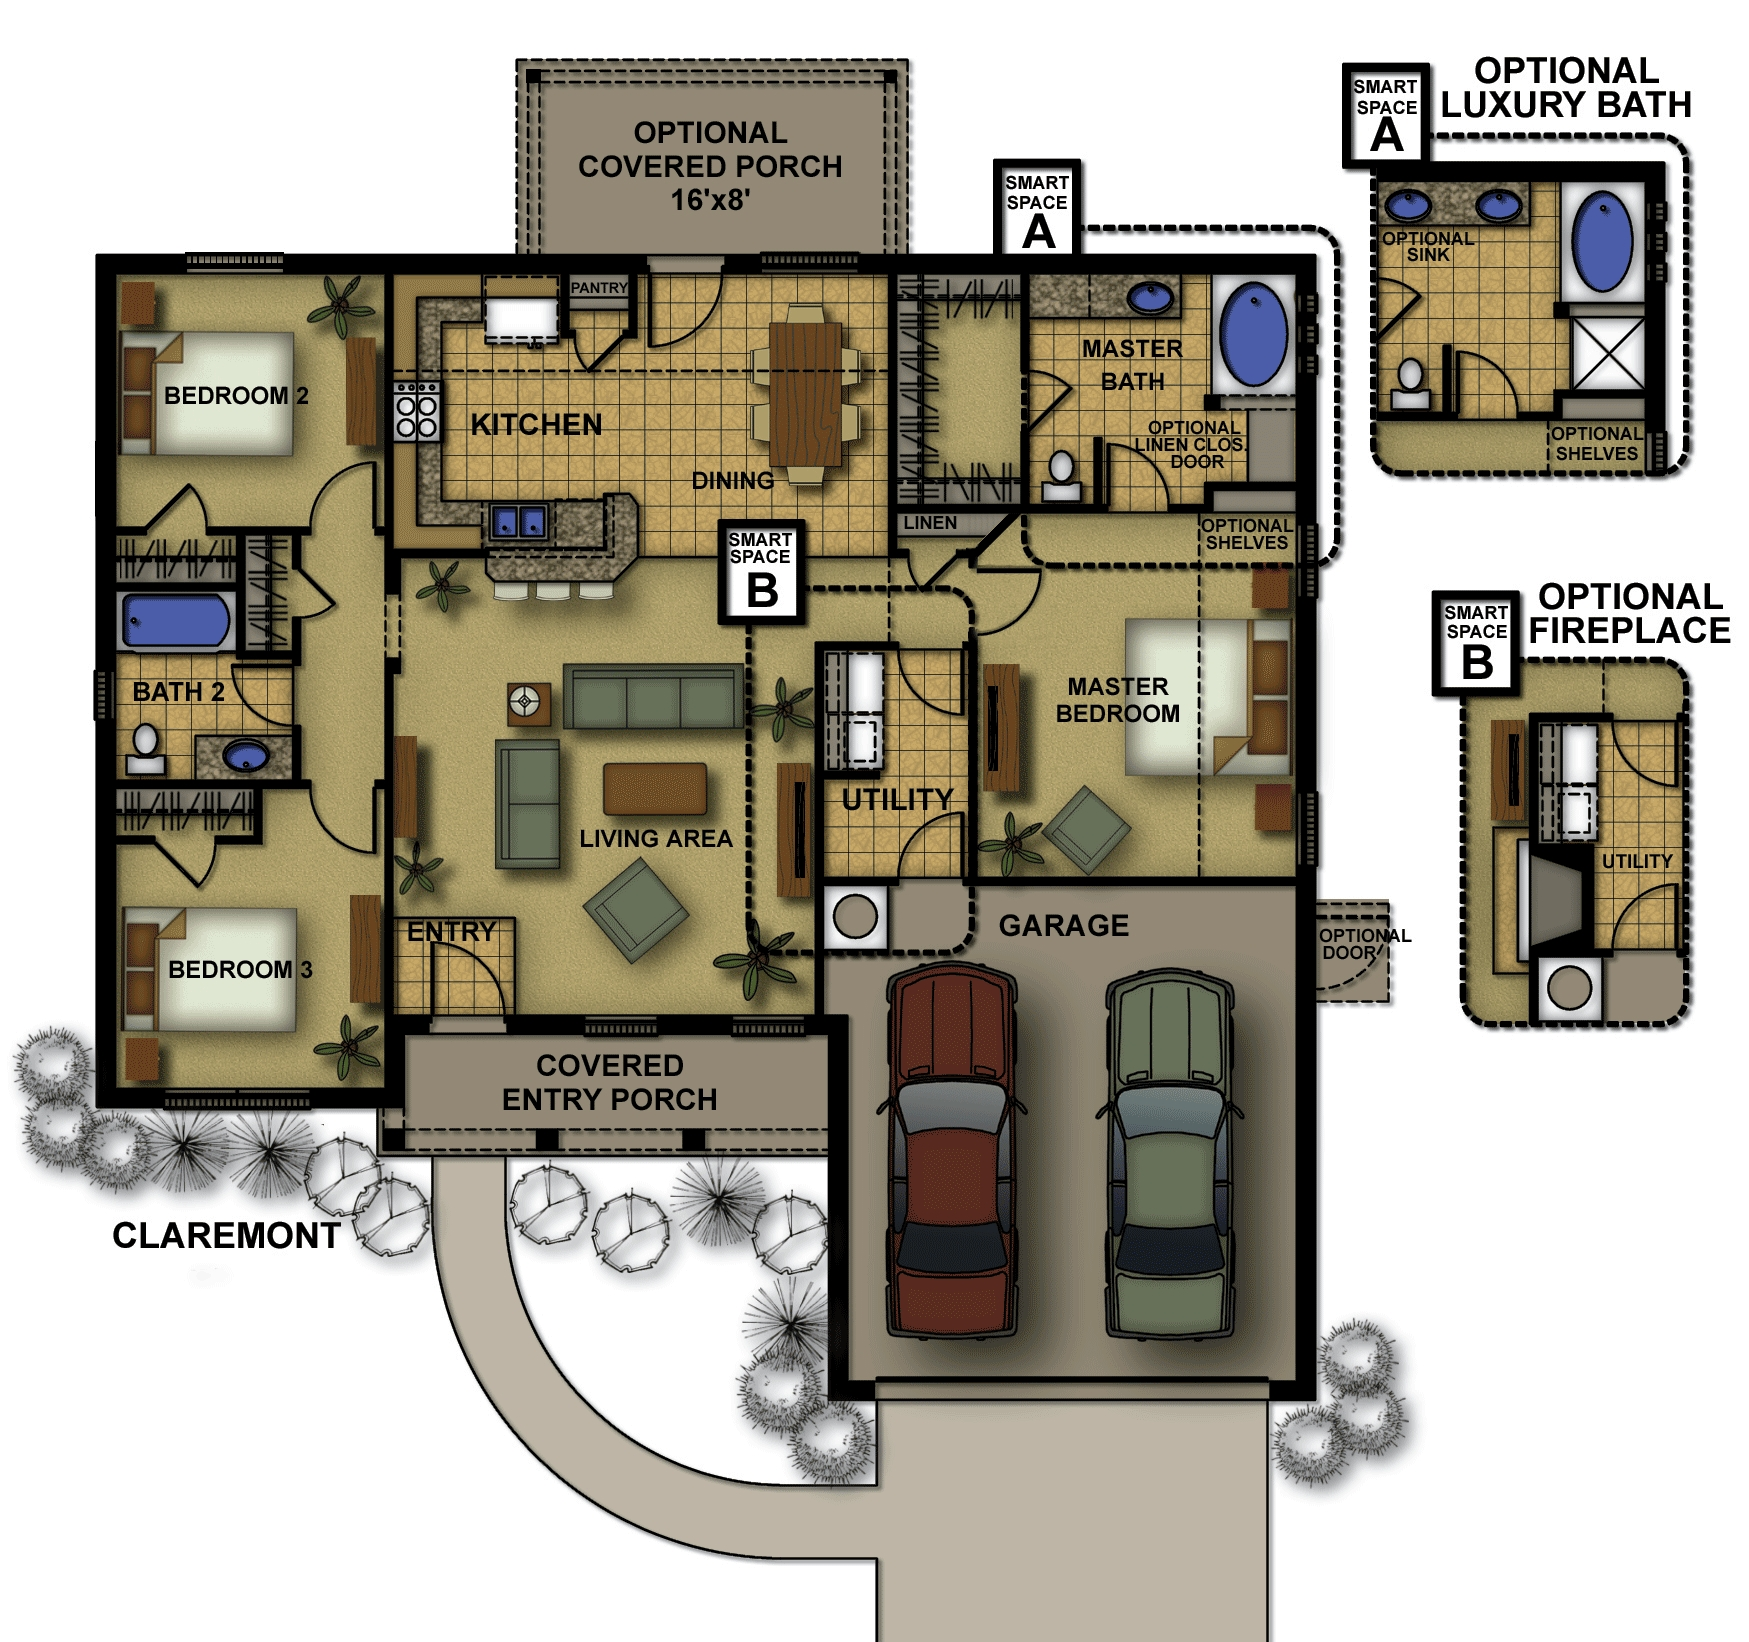 Claremont-II Floorplan